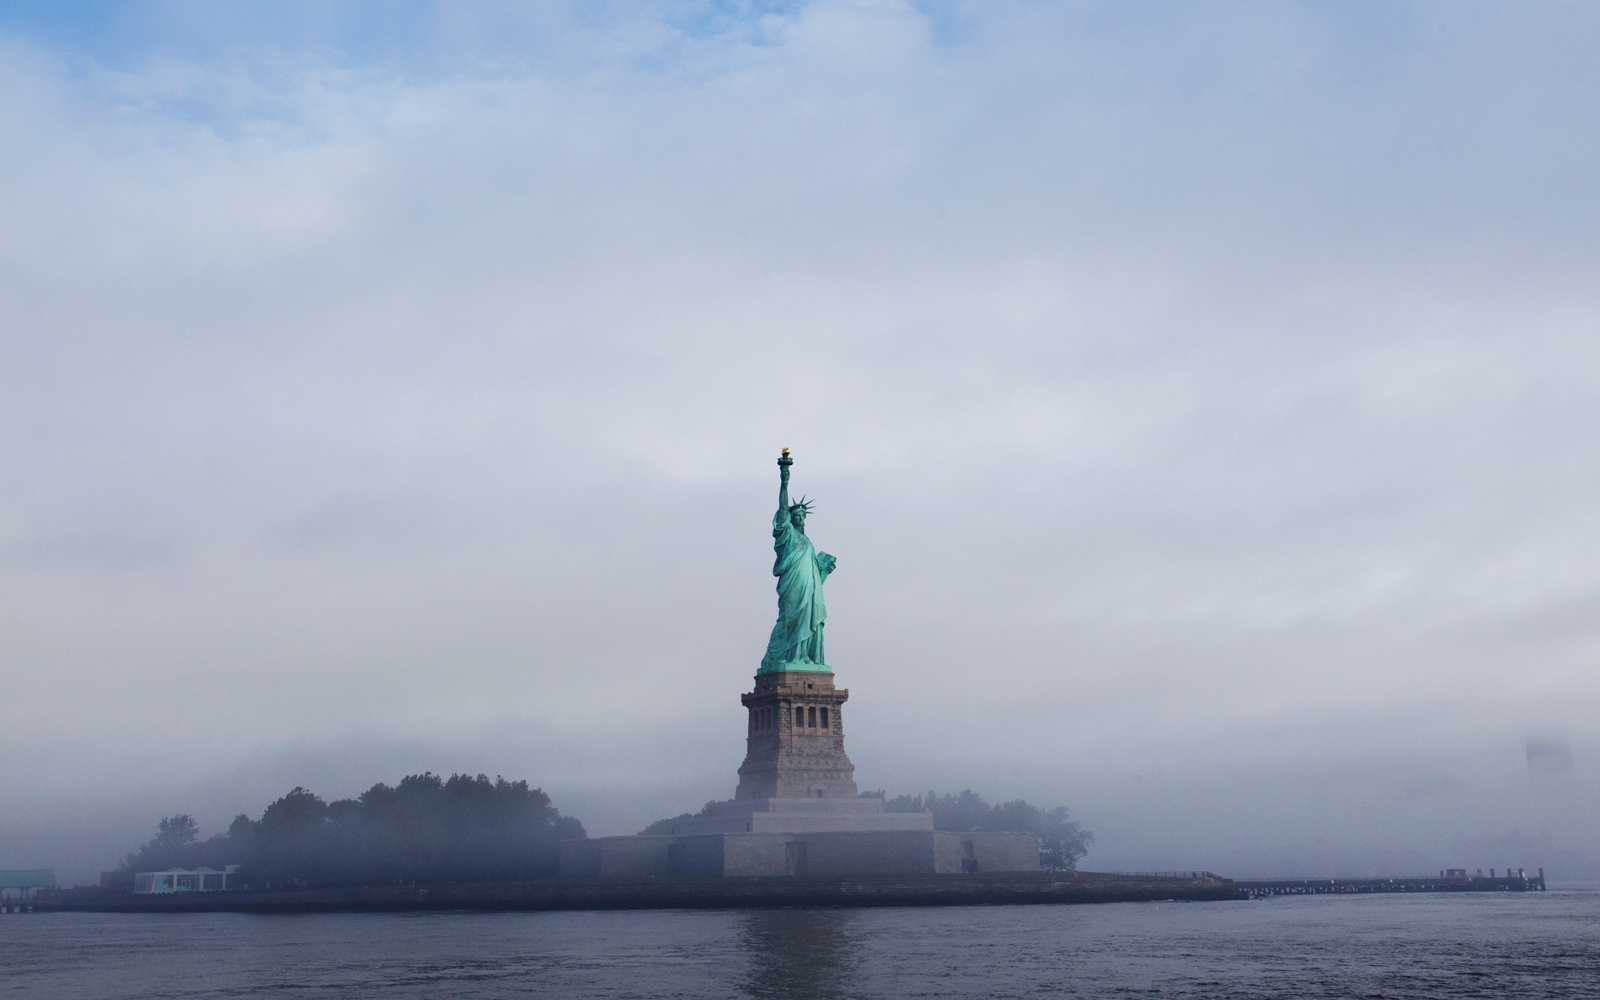 Statue Of Liberty Goes Dark: Twitter Speculates